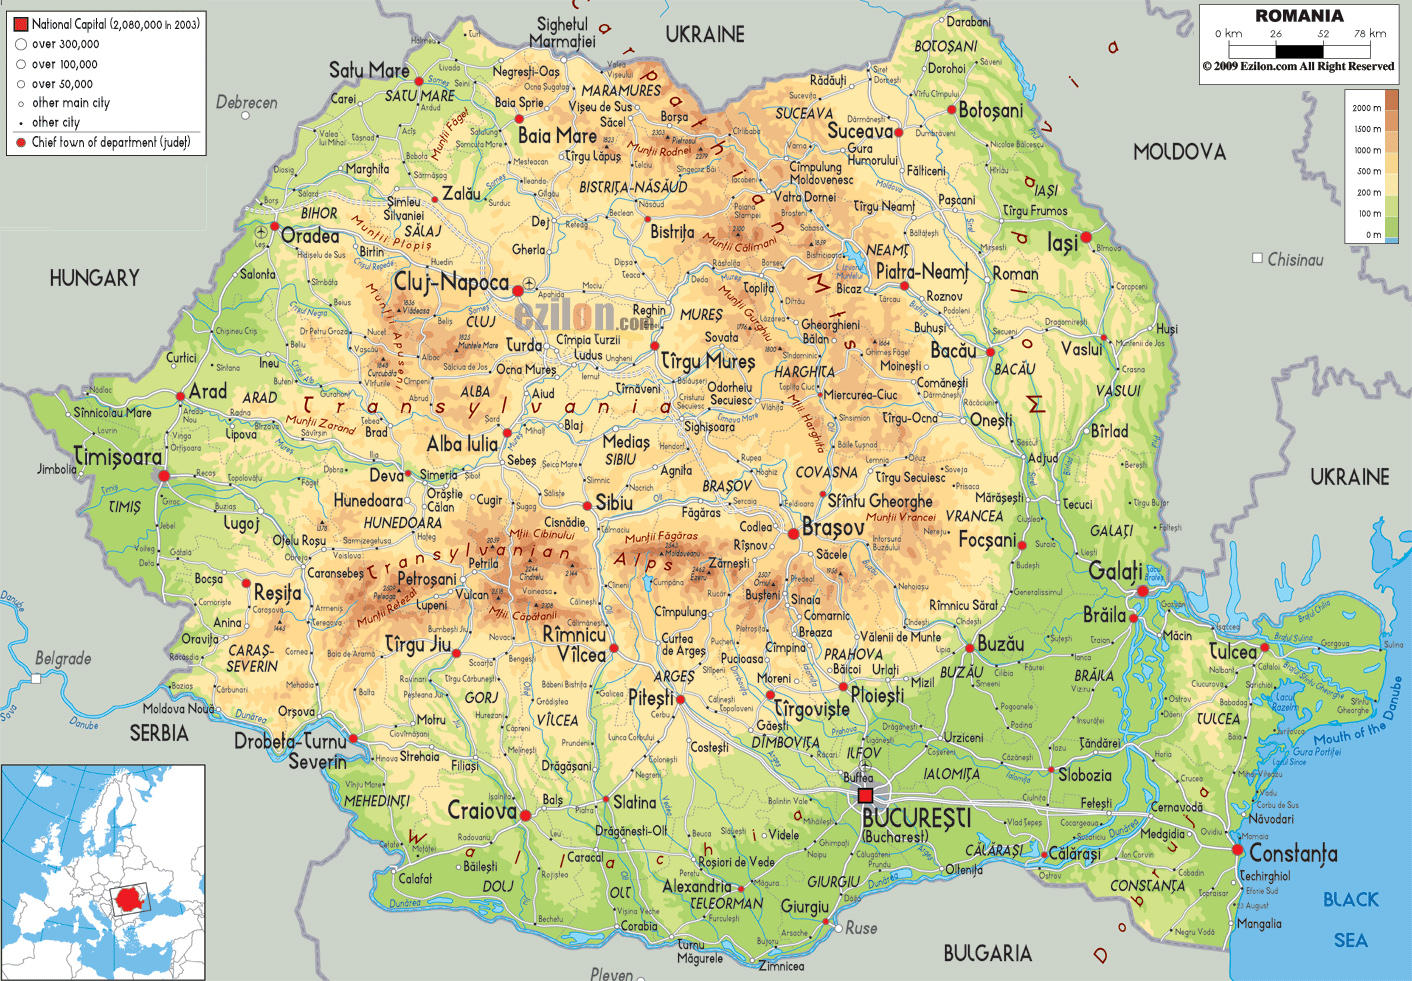 Maps of Romania | Deta...